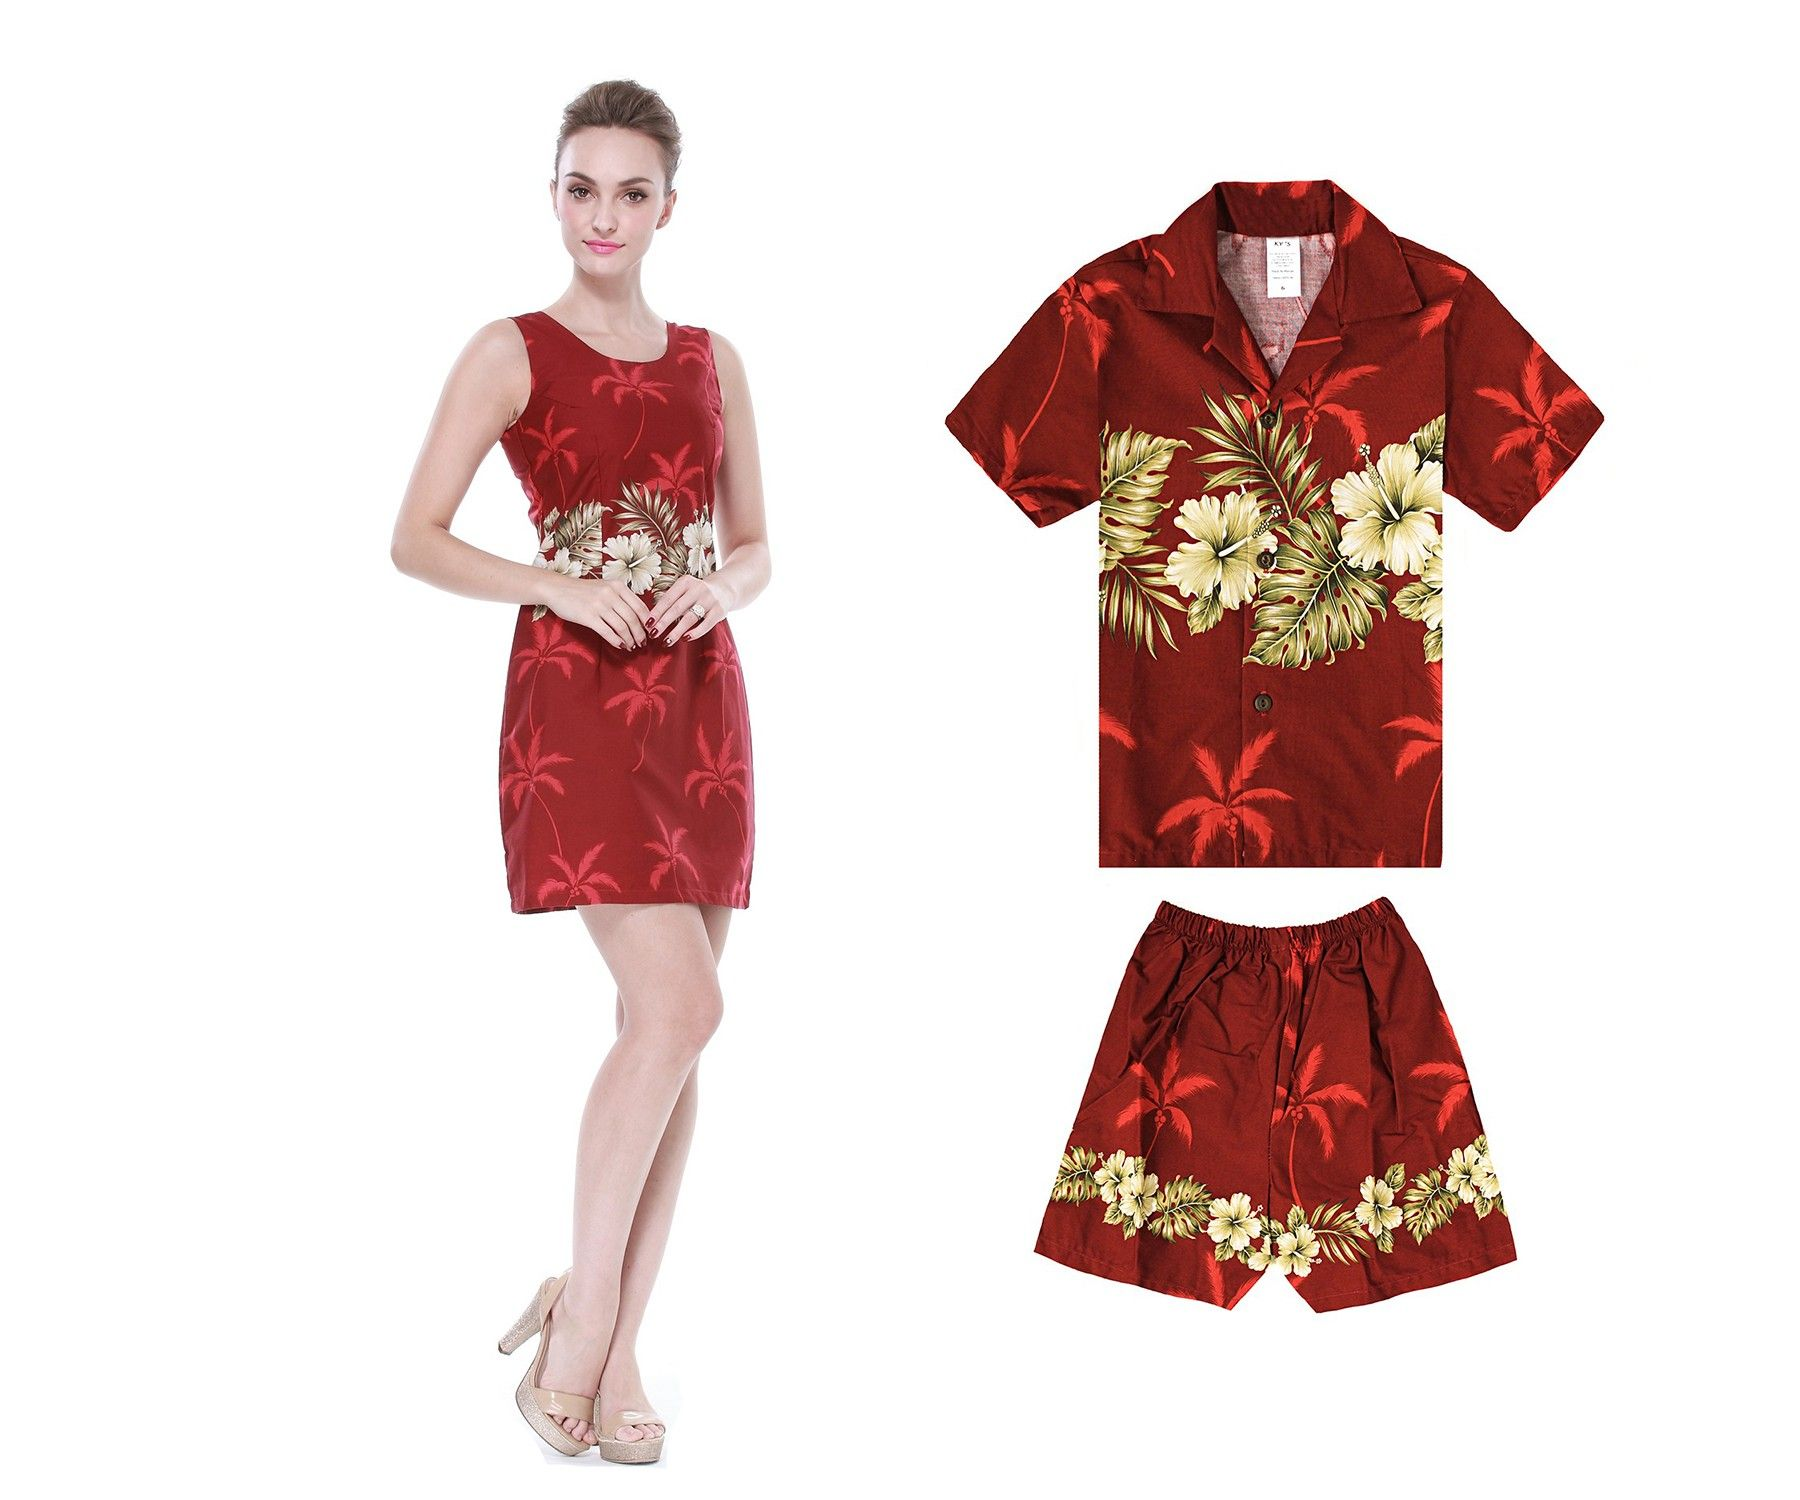 70cc2a0414a Made in Hawaii Mother Son Matching Dress and Shirt Outfit in Golden ...